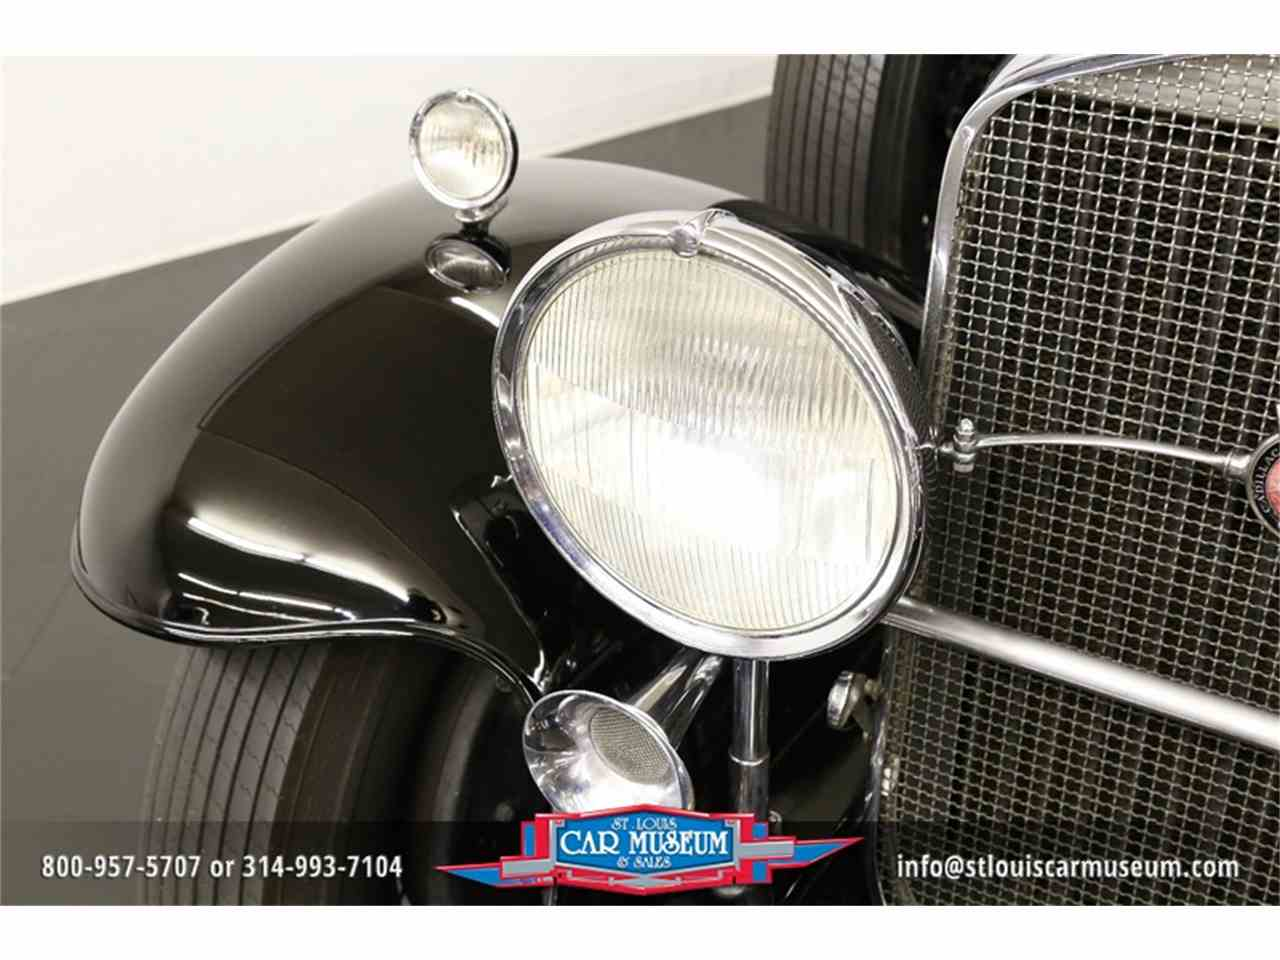 Large Picture of Classic '31 Cadillac V-16 Madam X Landau Sedan - $374,900.00 Offered by St. Louis Car Museum - JSU3